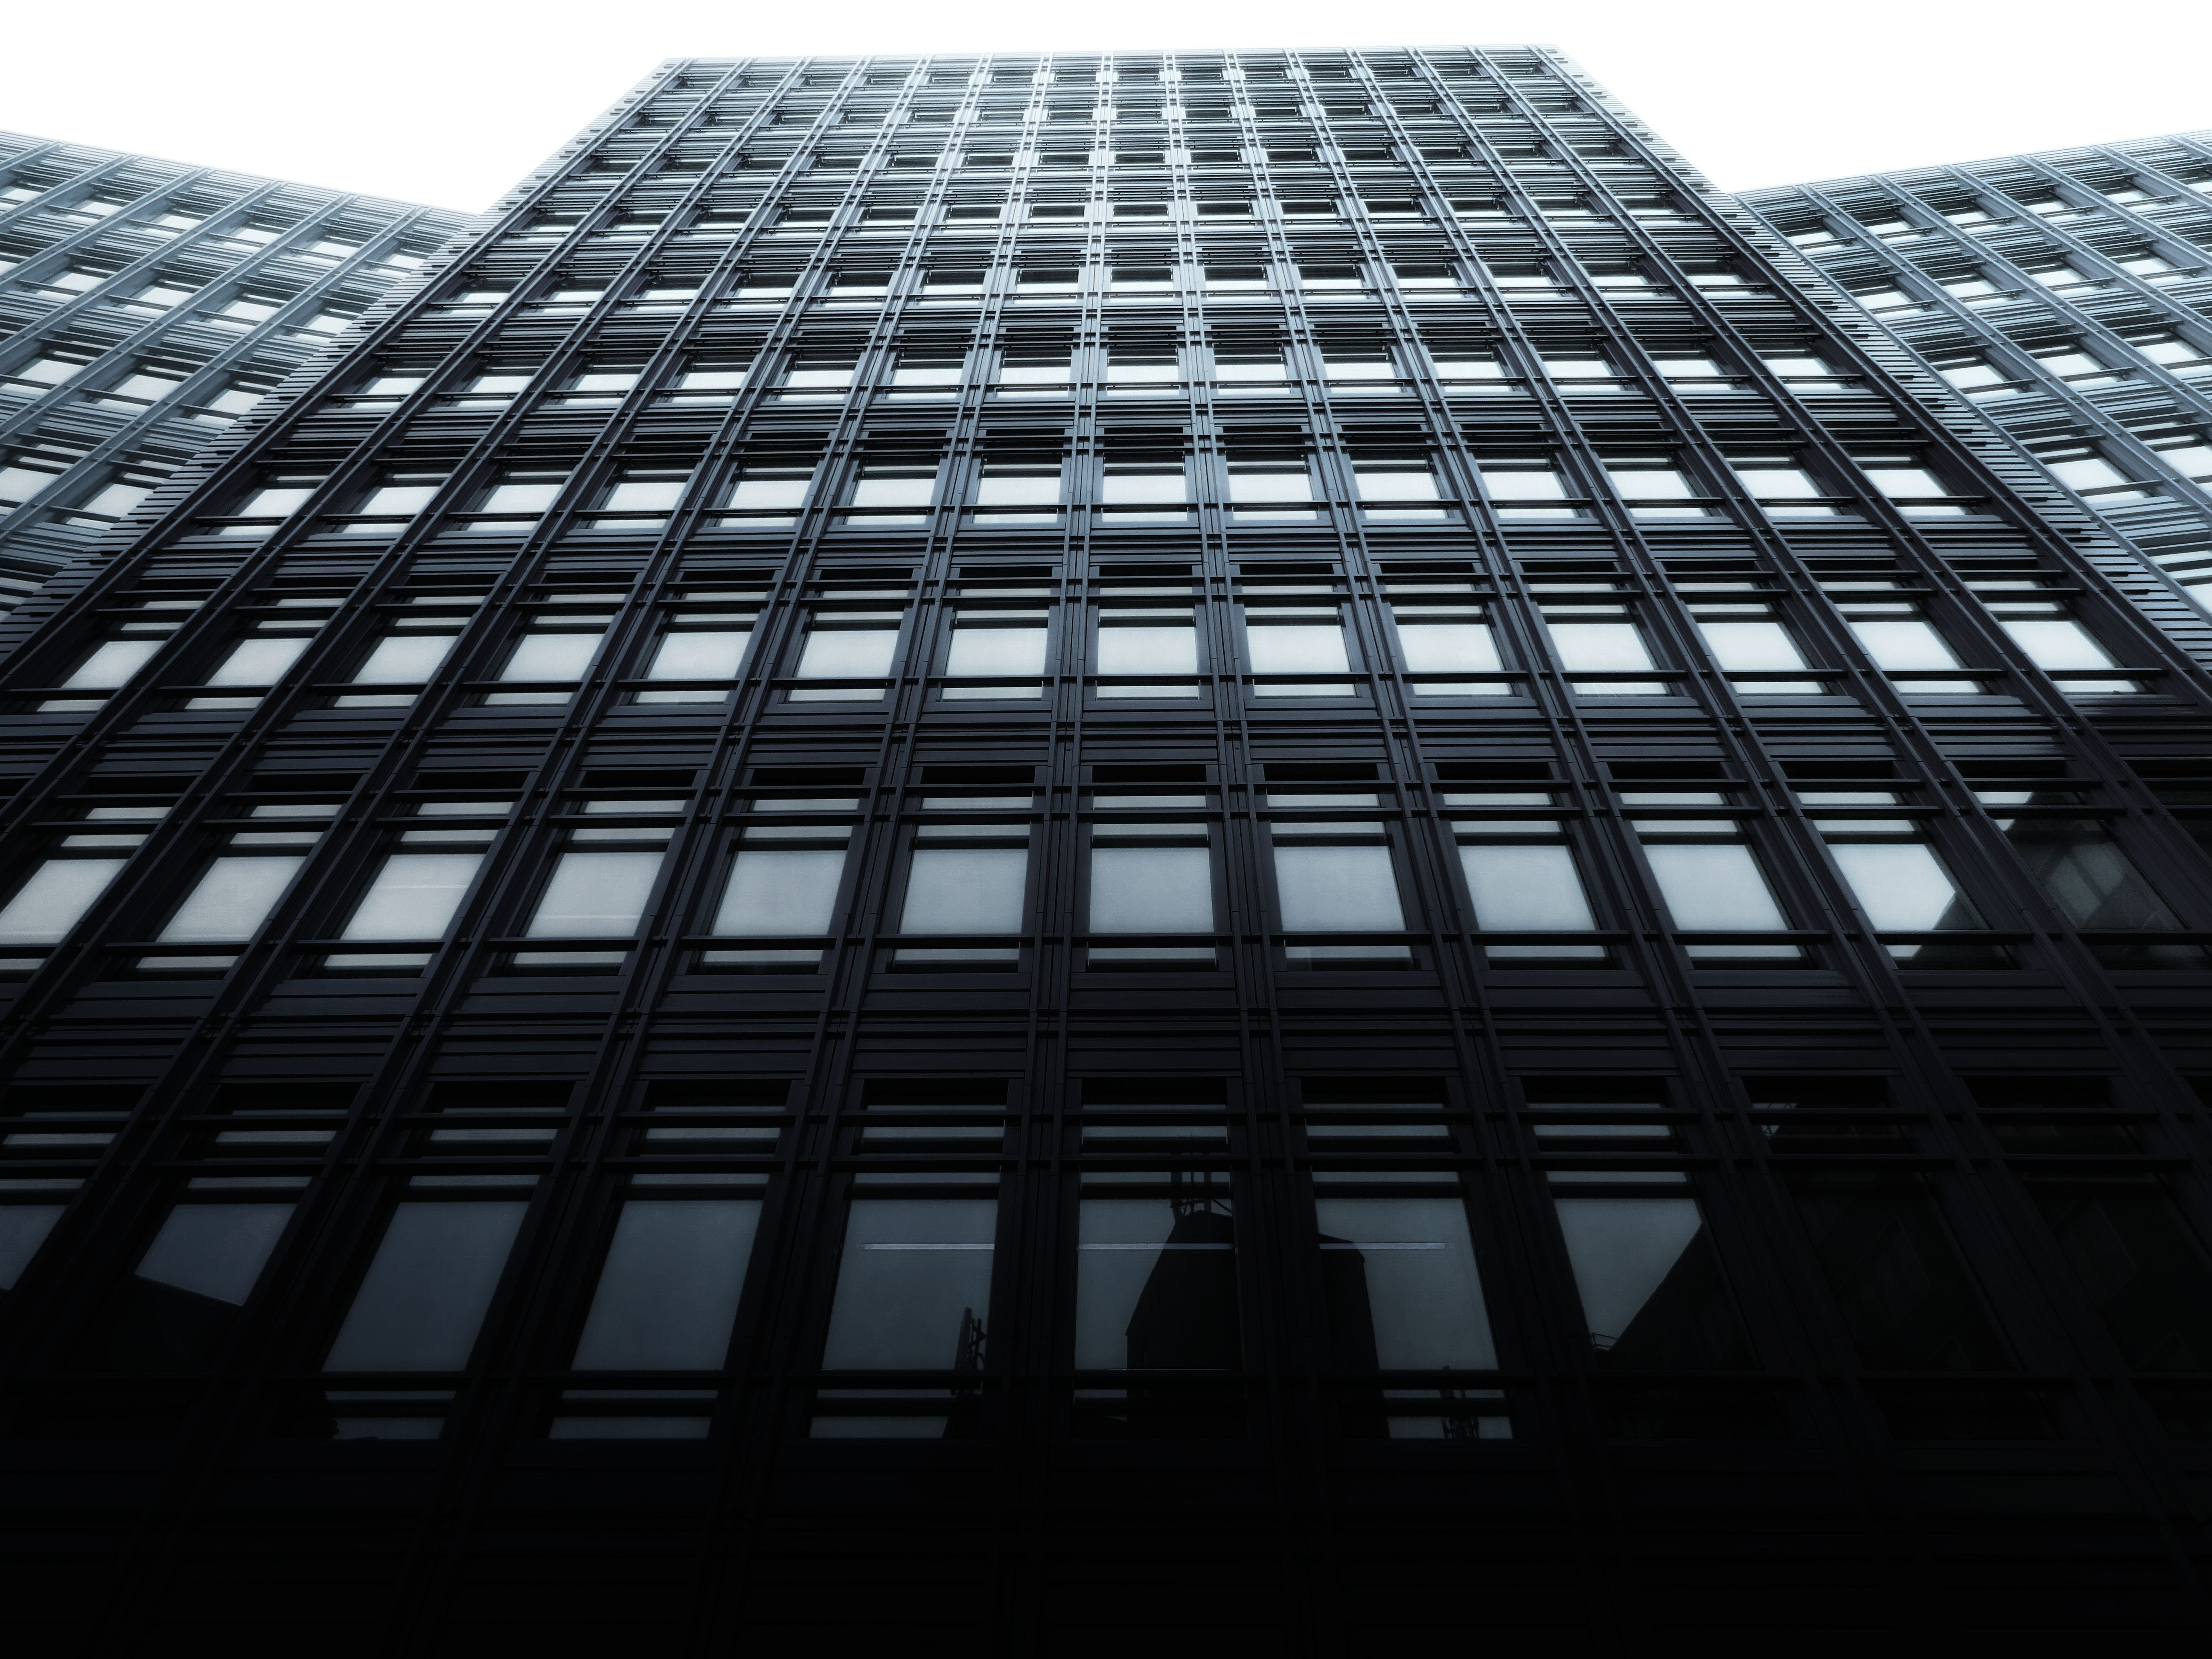 Low Angle Photography of Black and Gray Building